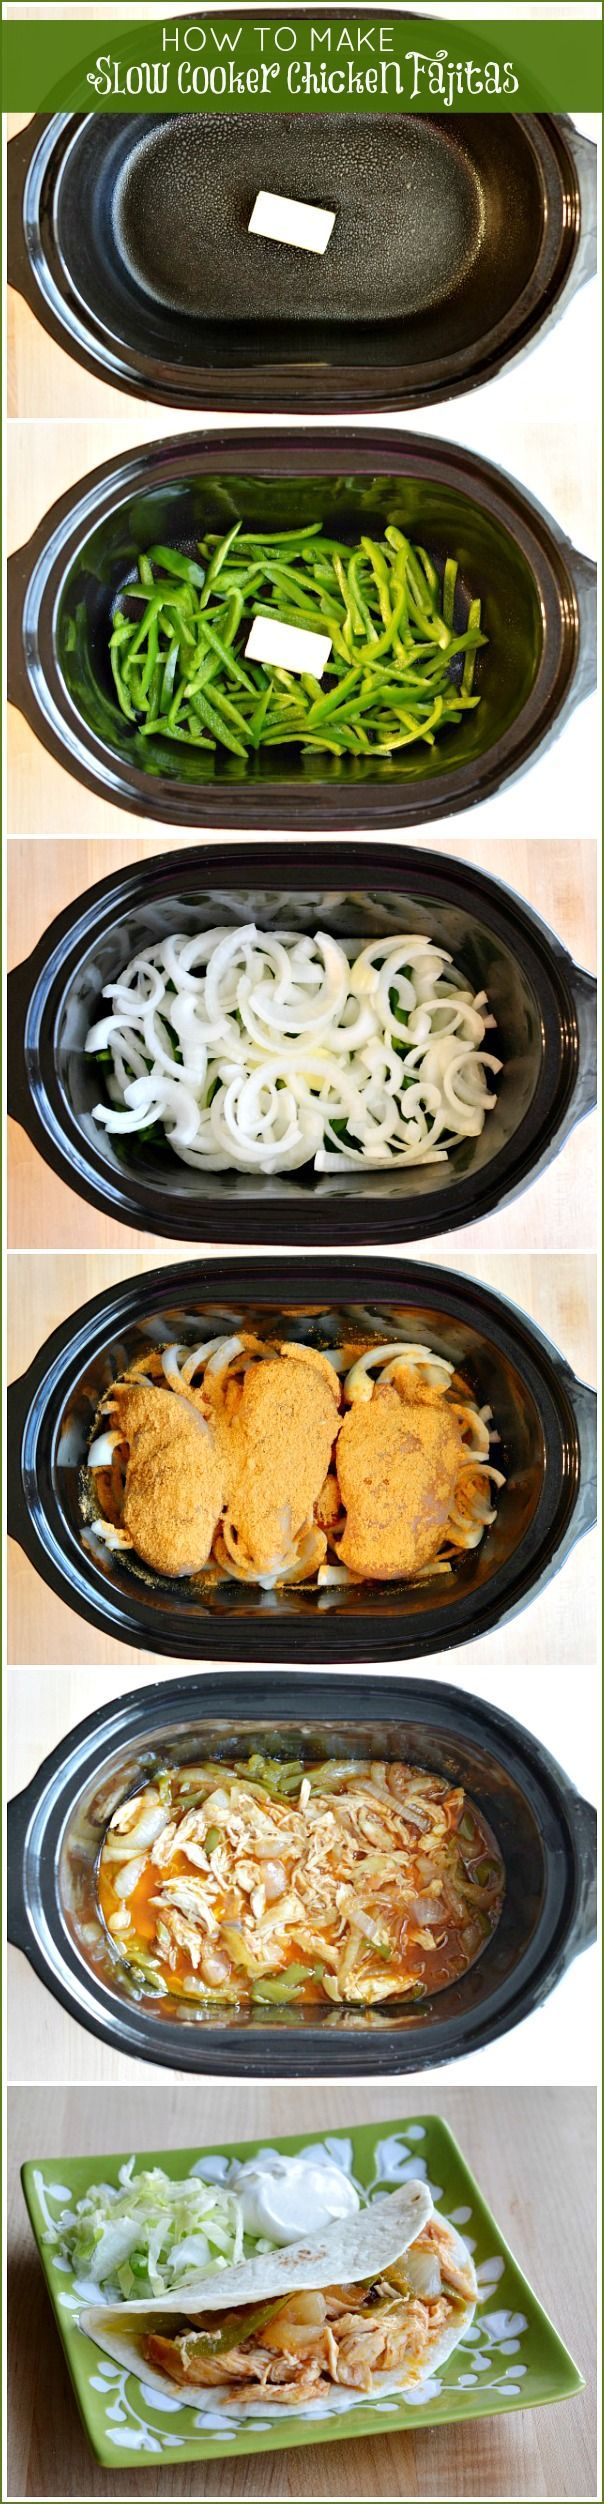 Slow Cooker Chicken Fajitas served with low carb tortillas